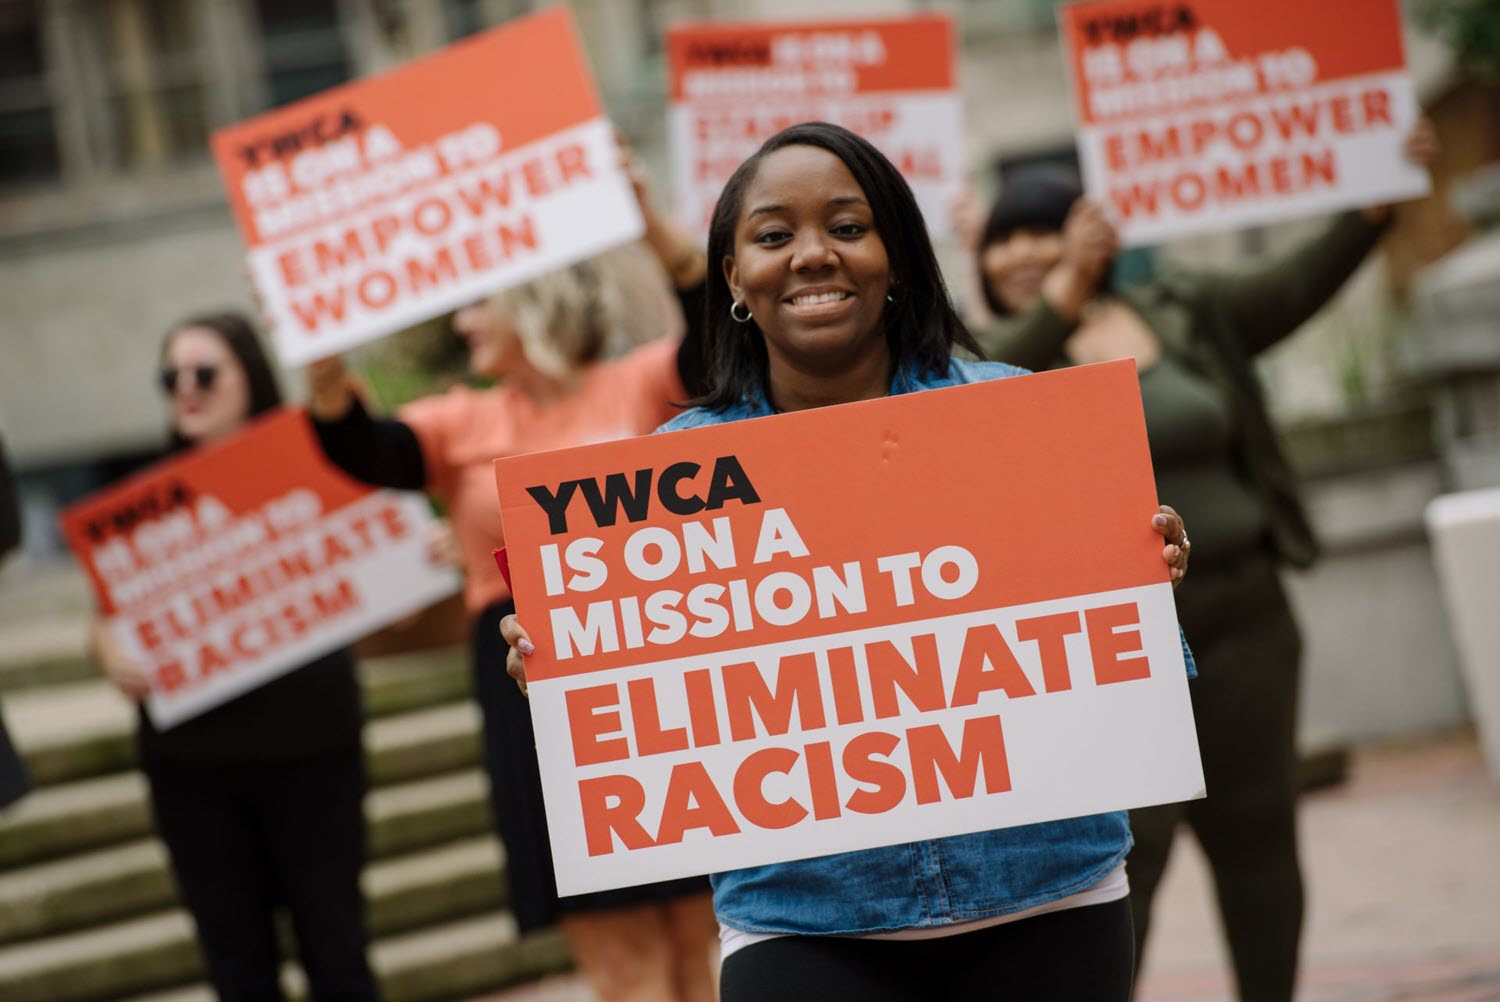 ywca on a mission to eliminate racism